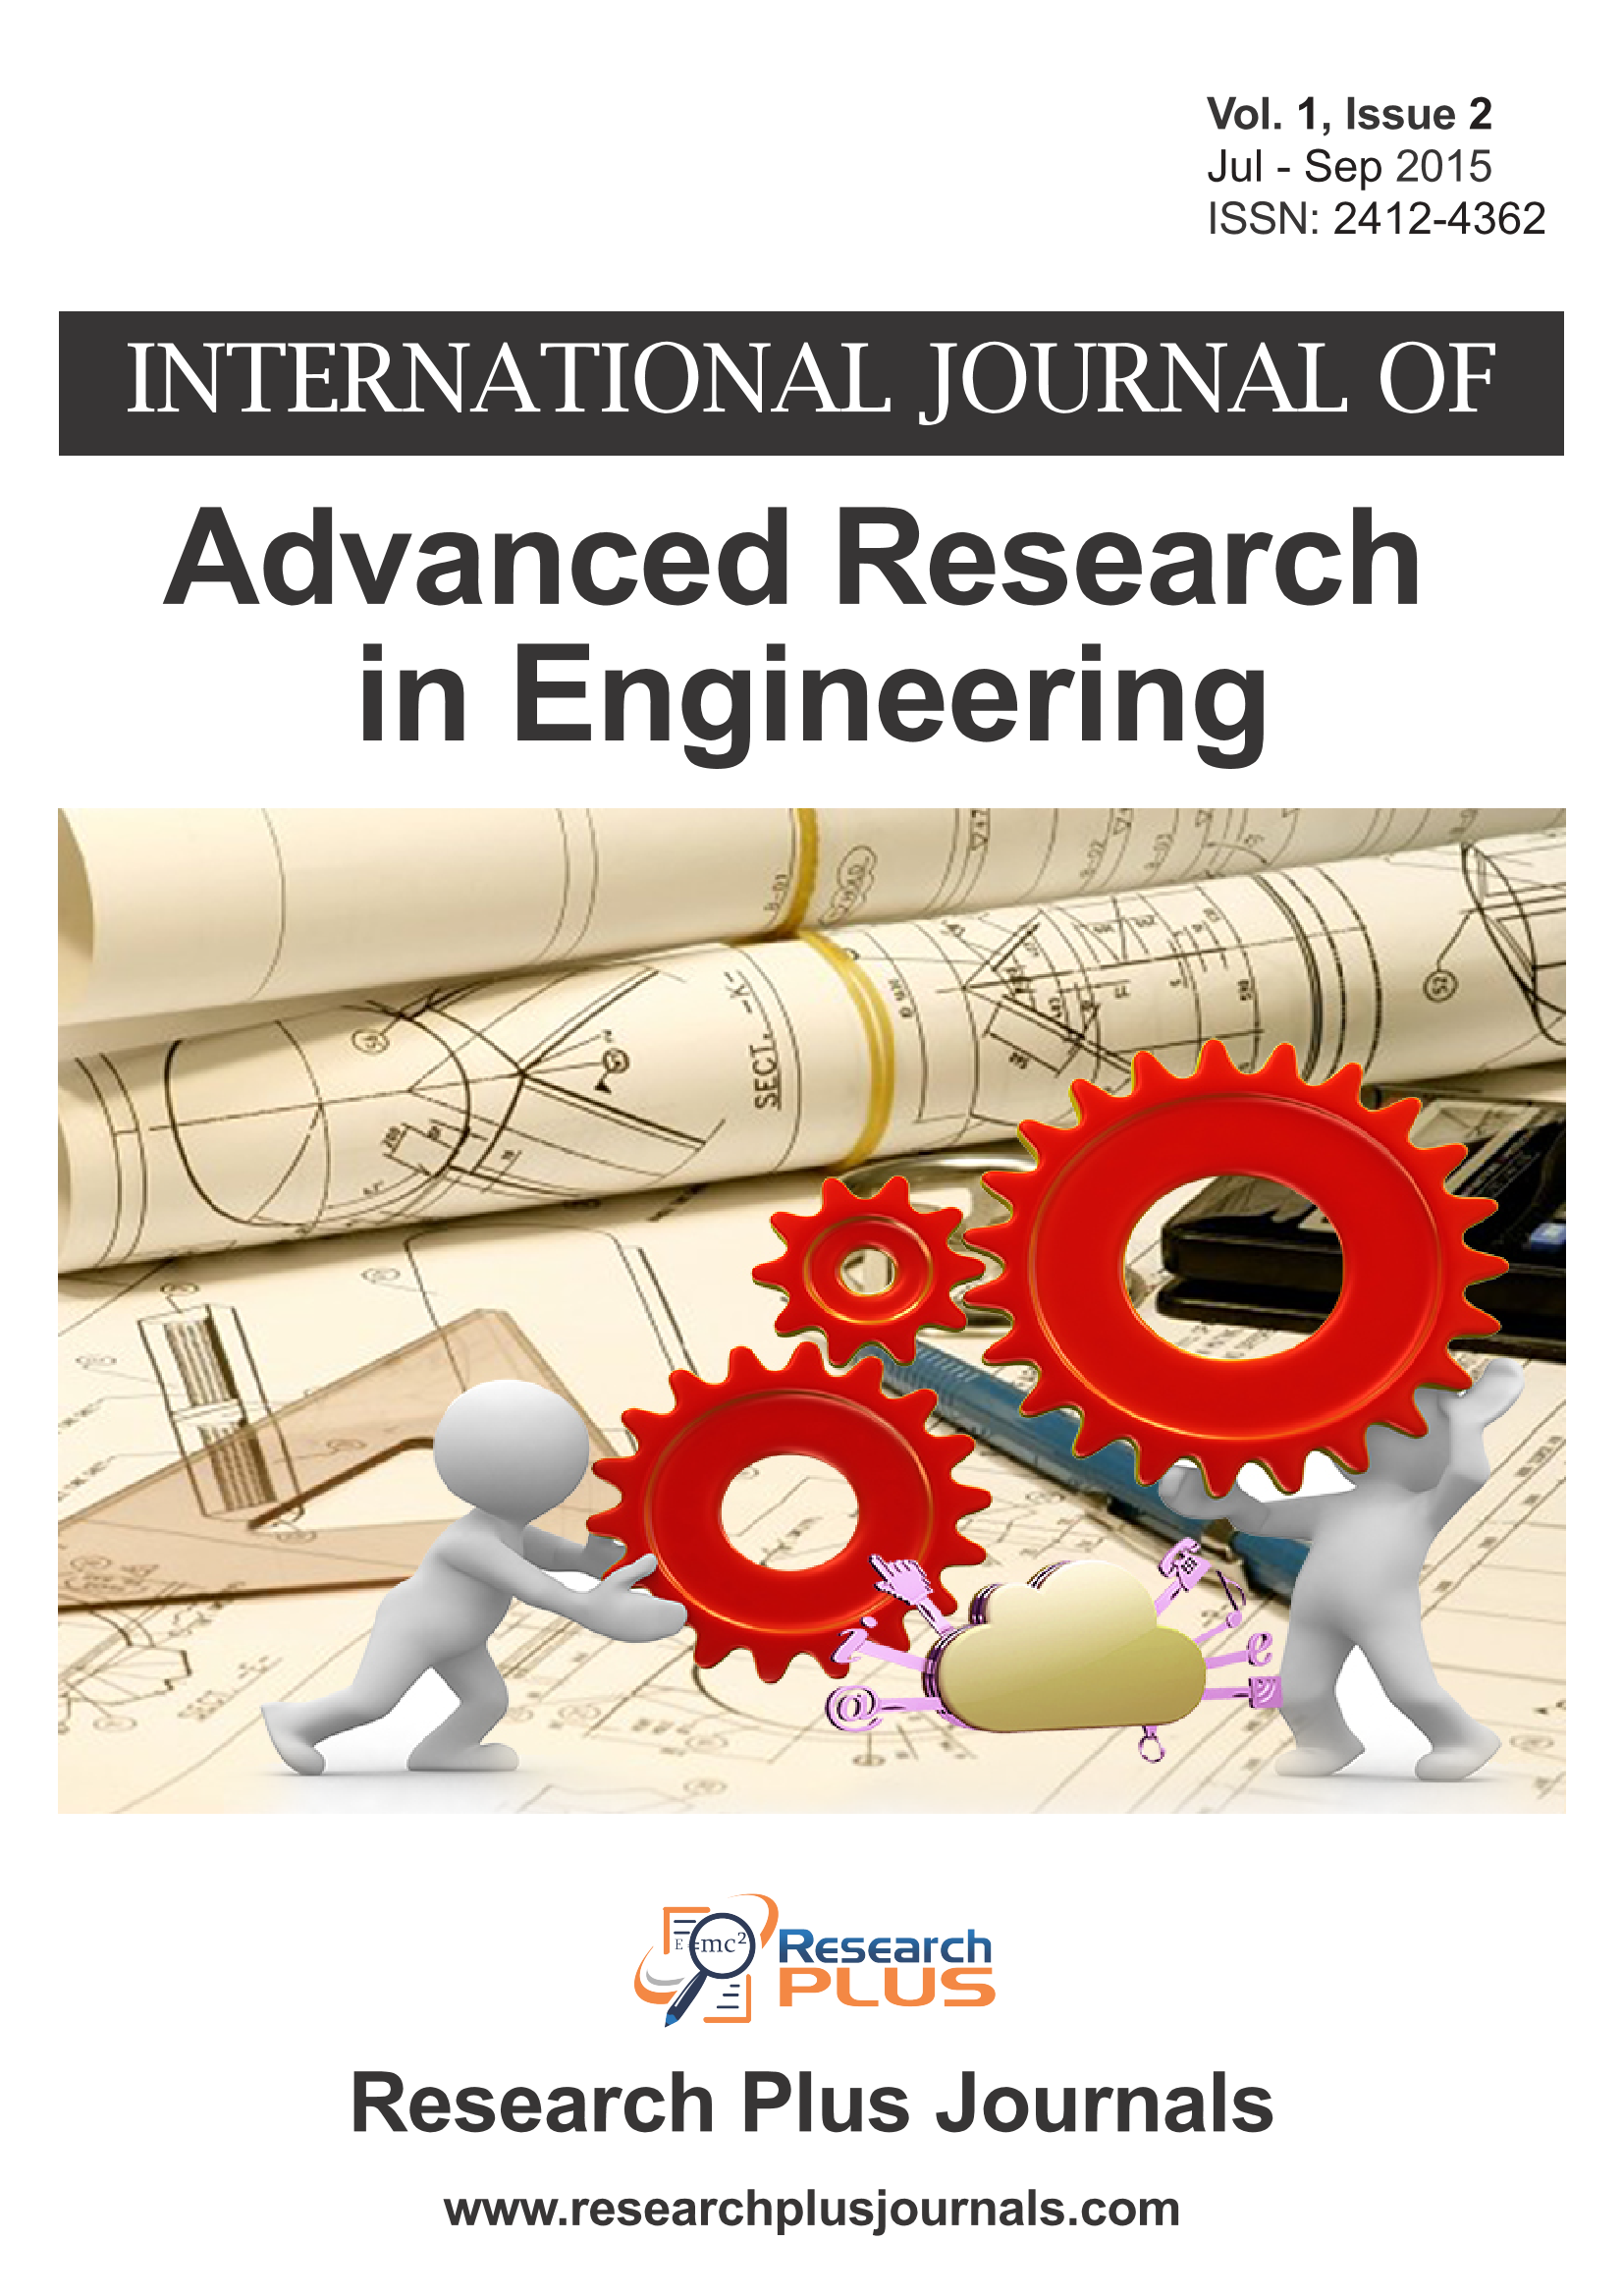 Volume 1, Issue 2, International Journal of Advanced Research in Engineering (IJARE)  (Online ISSN 2412-4362)